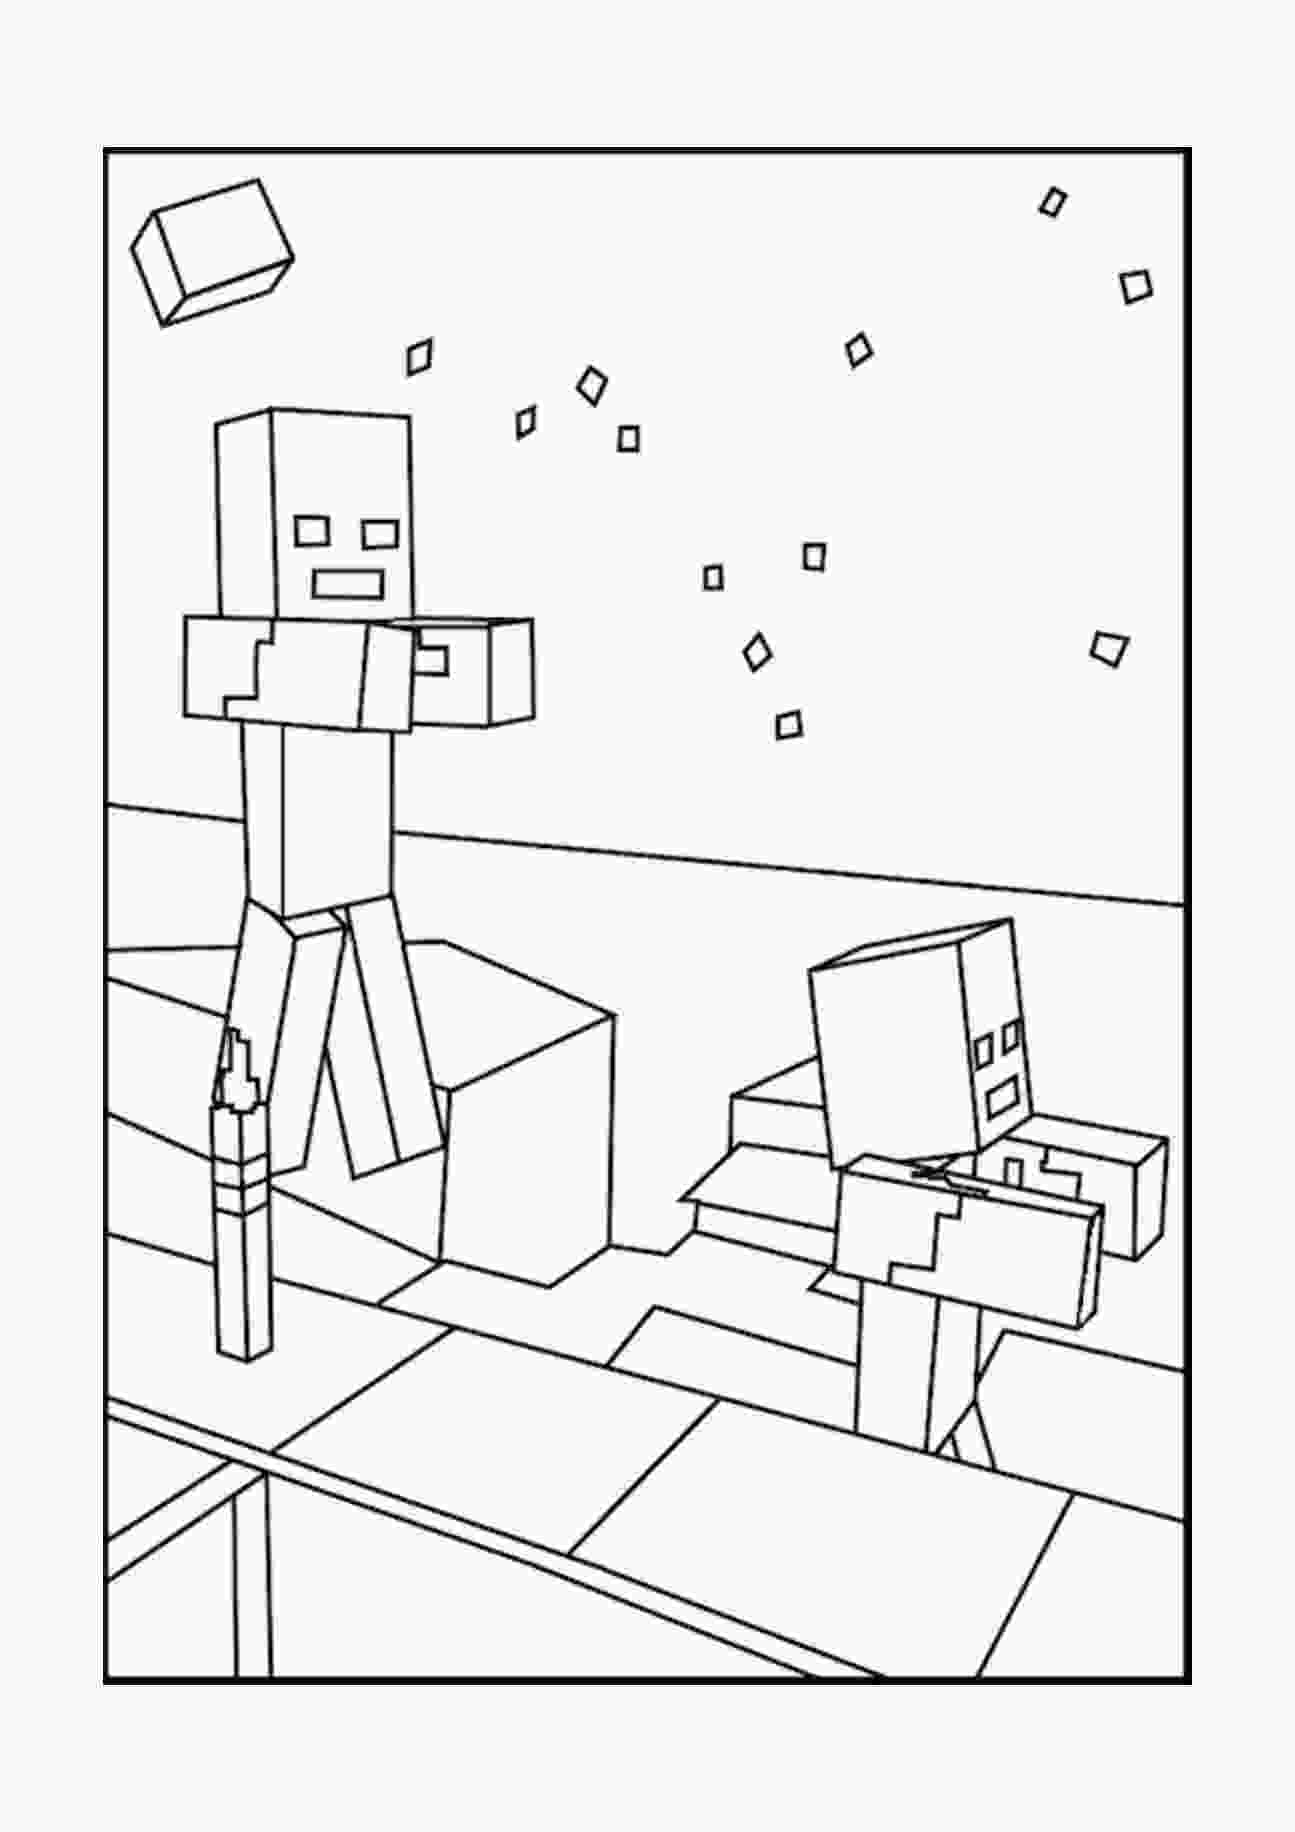 minecraft zombie coloring pages pin by selcin tezcan on minecraft minecraft coloring